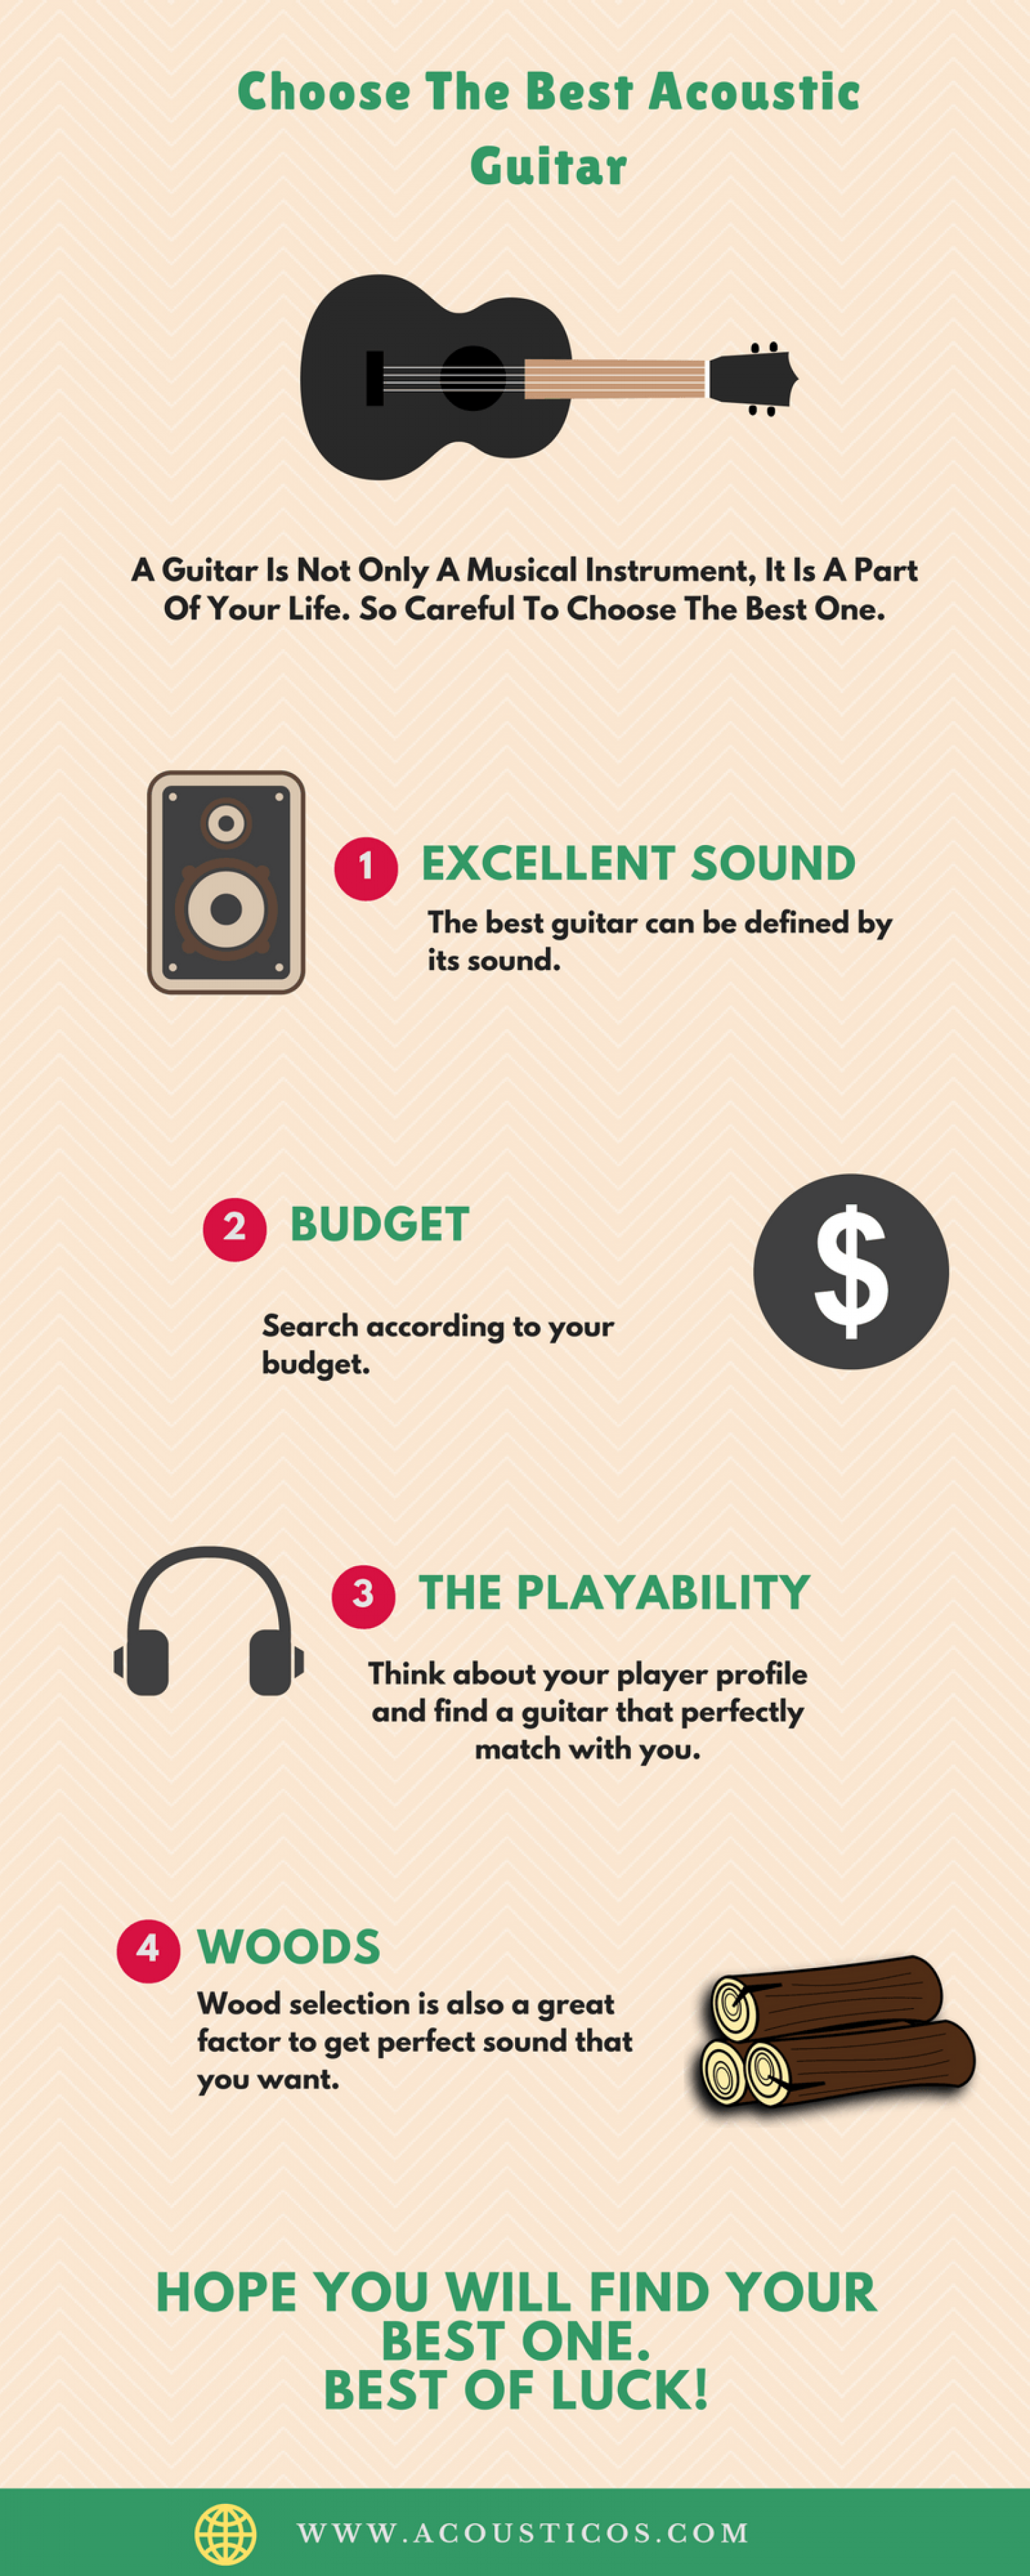 How to choose the best acoustic guitar Infographic